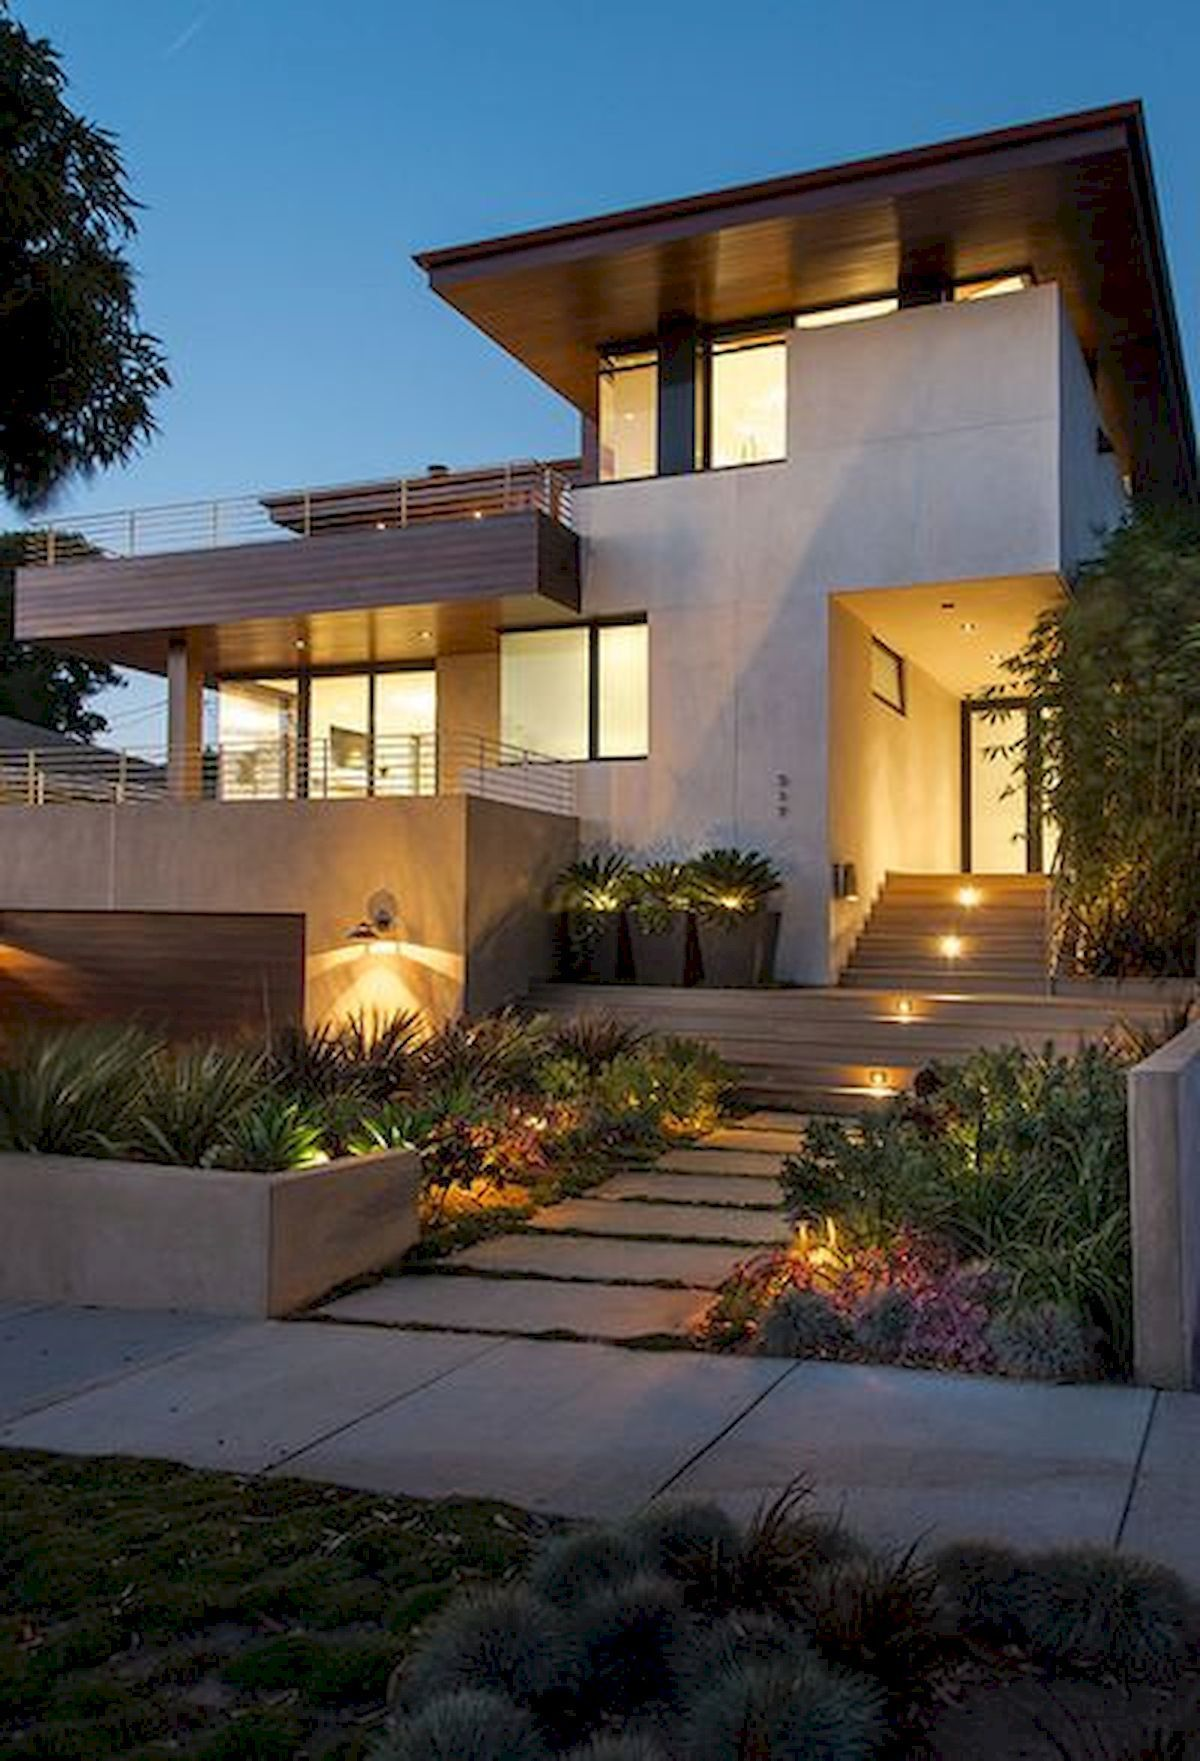 90 Simple And Beautiful Front Yard Landscaping Ideas On A Budget 68 Facade House Minimalist House Design Architecture House